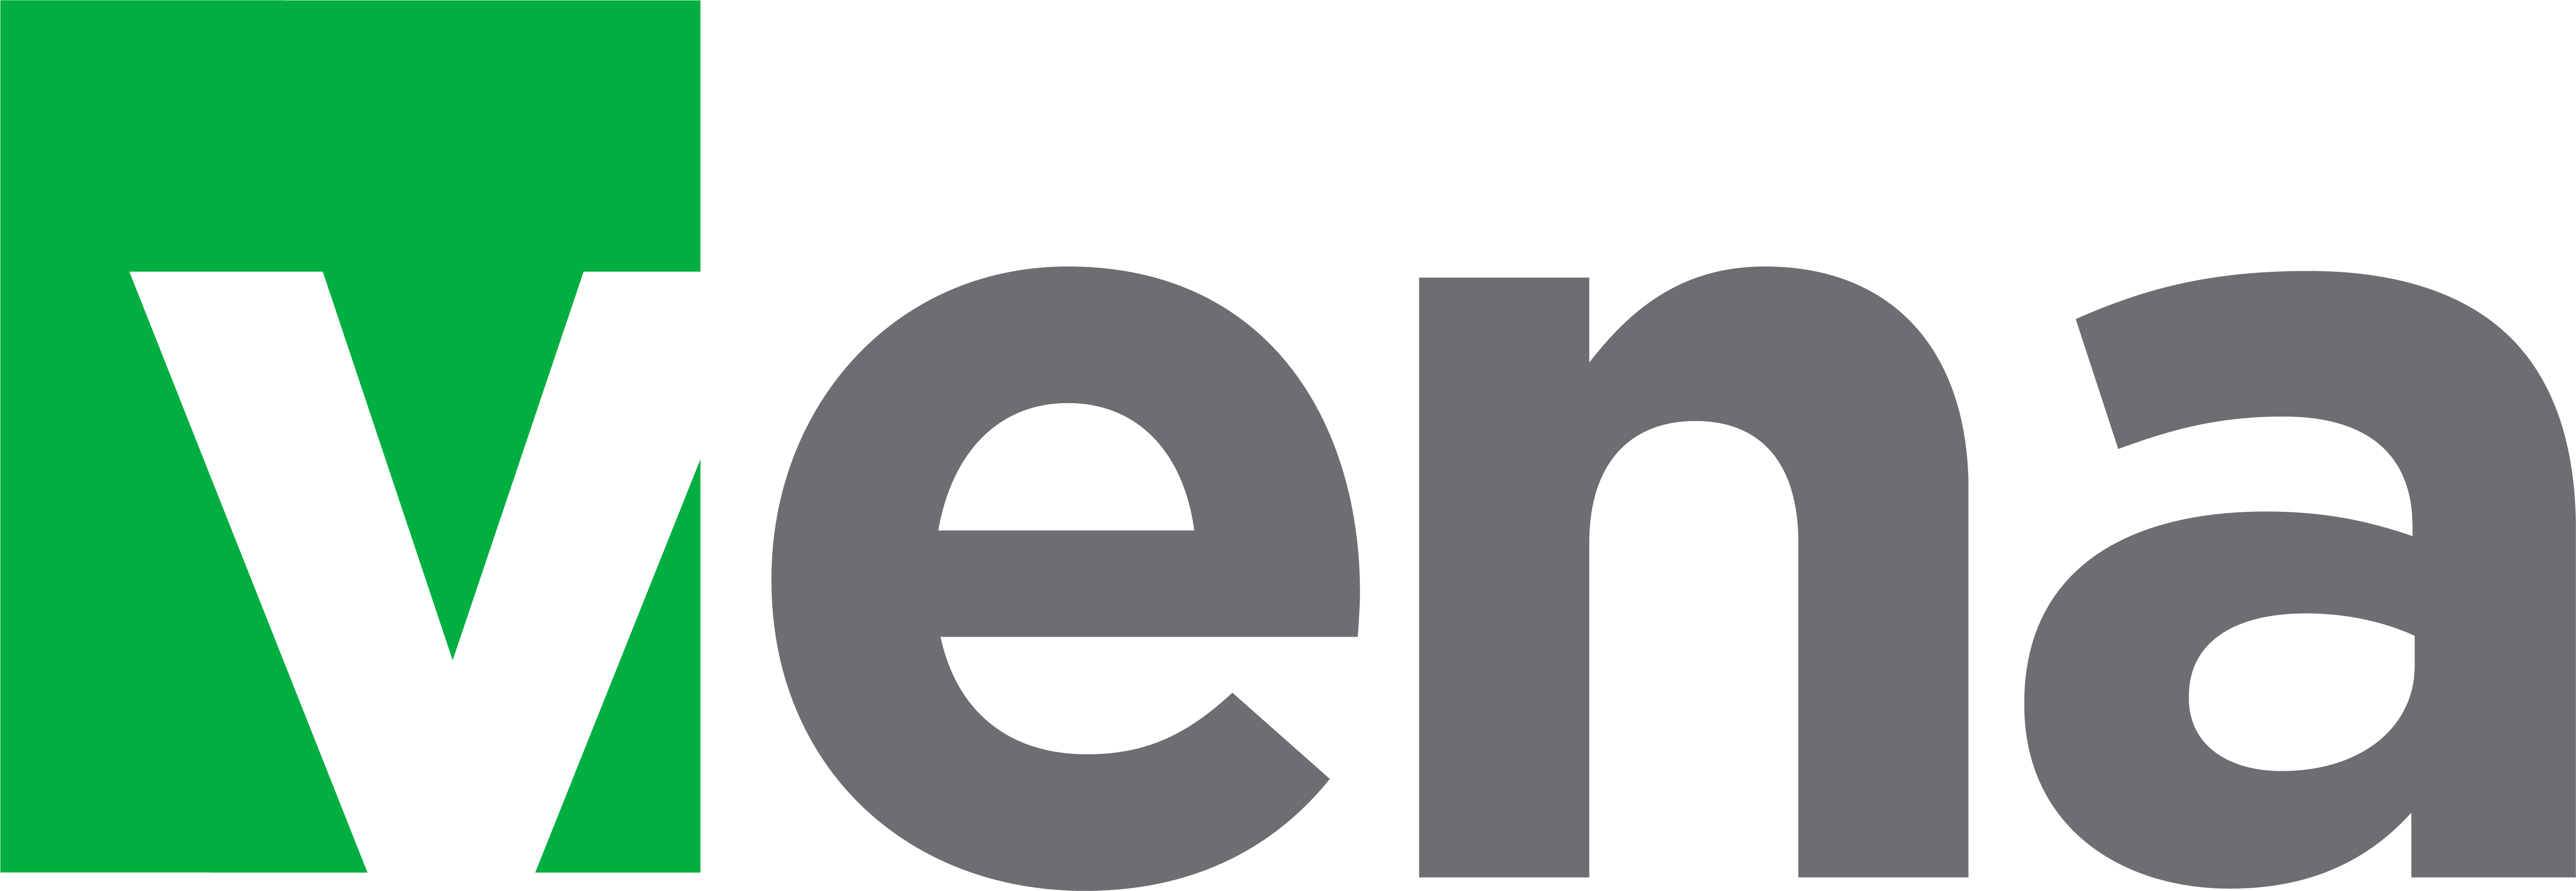 Boomi Supports Connectivity for Vena Solutions' Performance Management Software